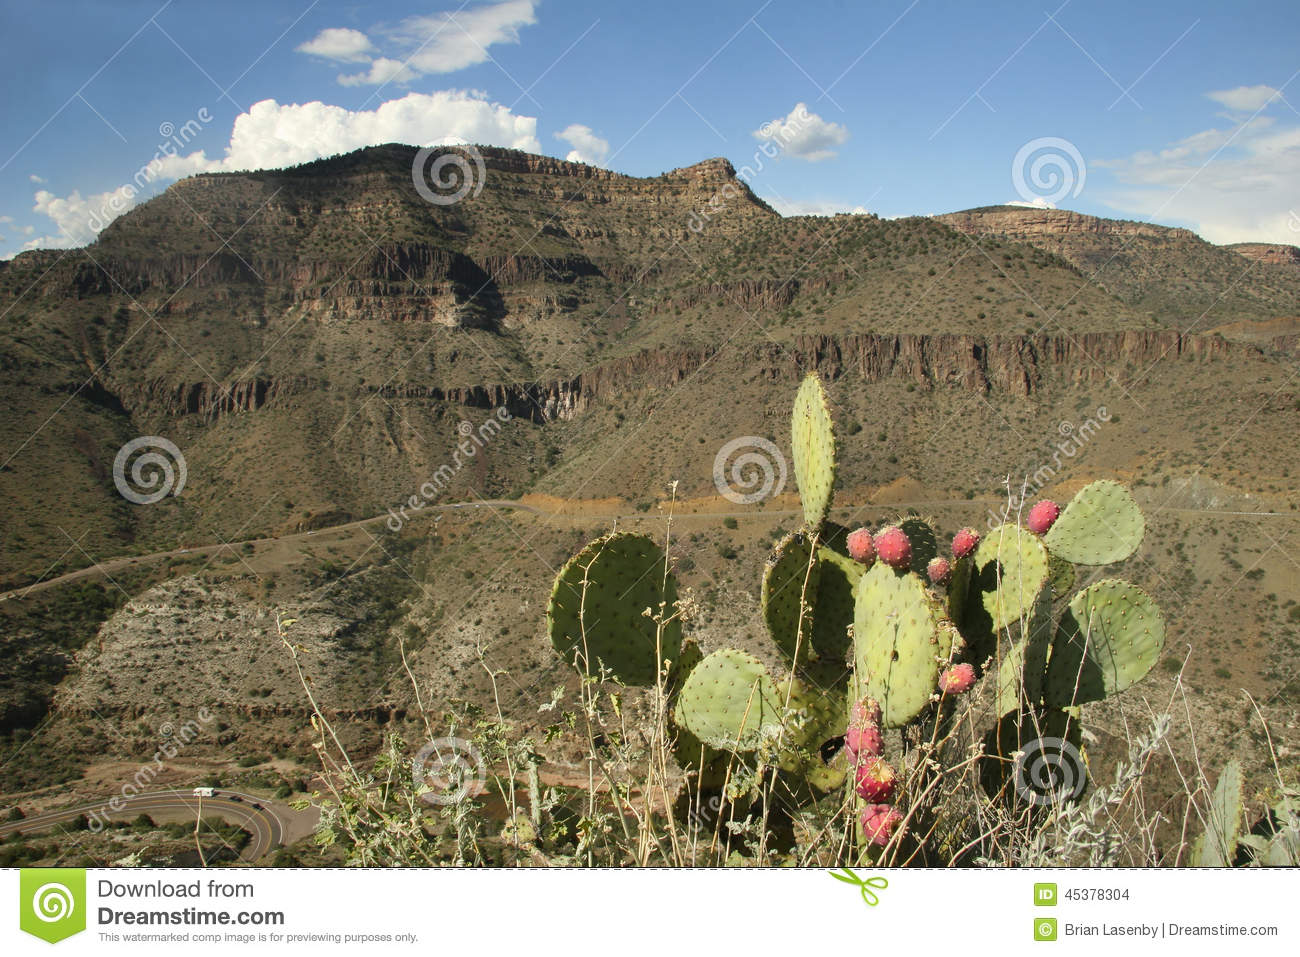 Prickly Pear Cactus And Sandstone Mountain.